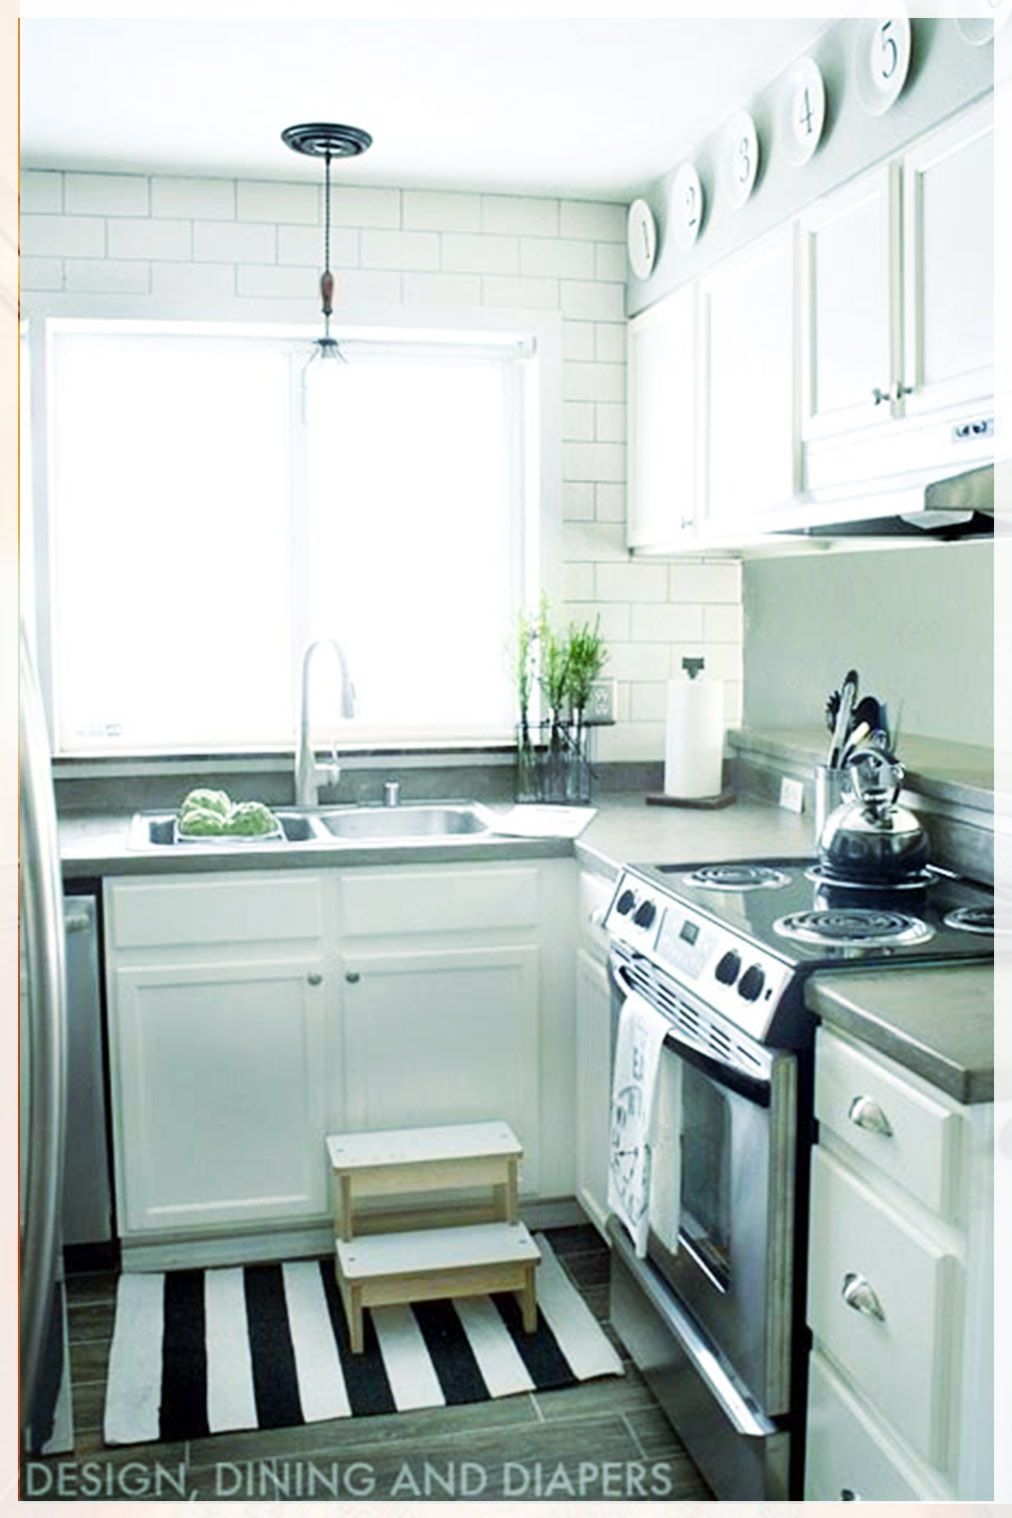 20 Brilliant Kitchen Remodel Ideas Before And After For 2020 Remodel Tips Tool Farmhouse Kitchen Inspiration Kitchen Remodel Small Kitchen Design Small